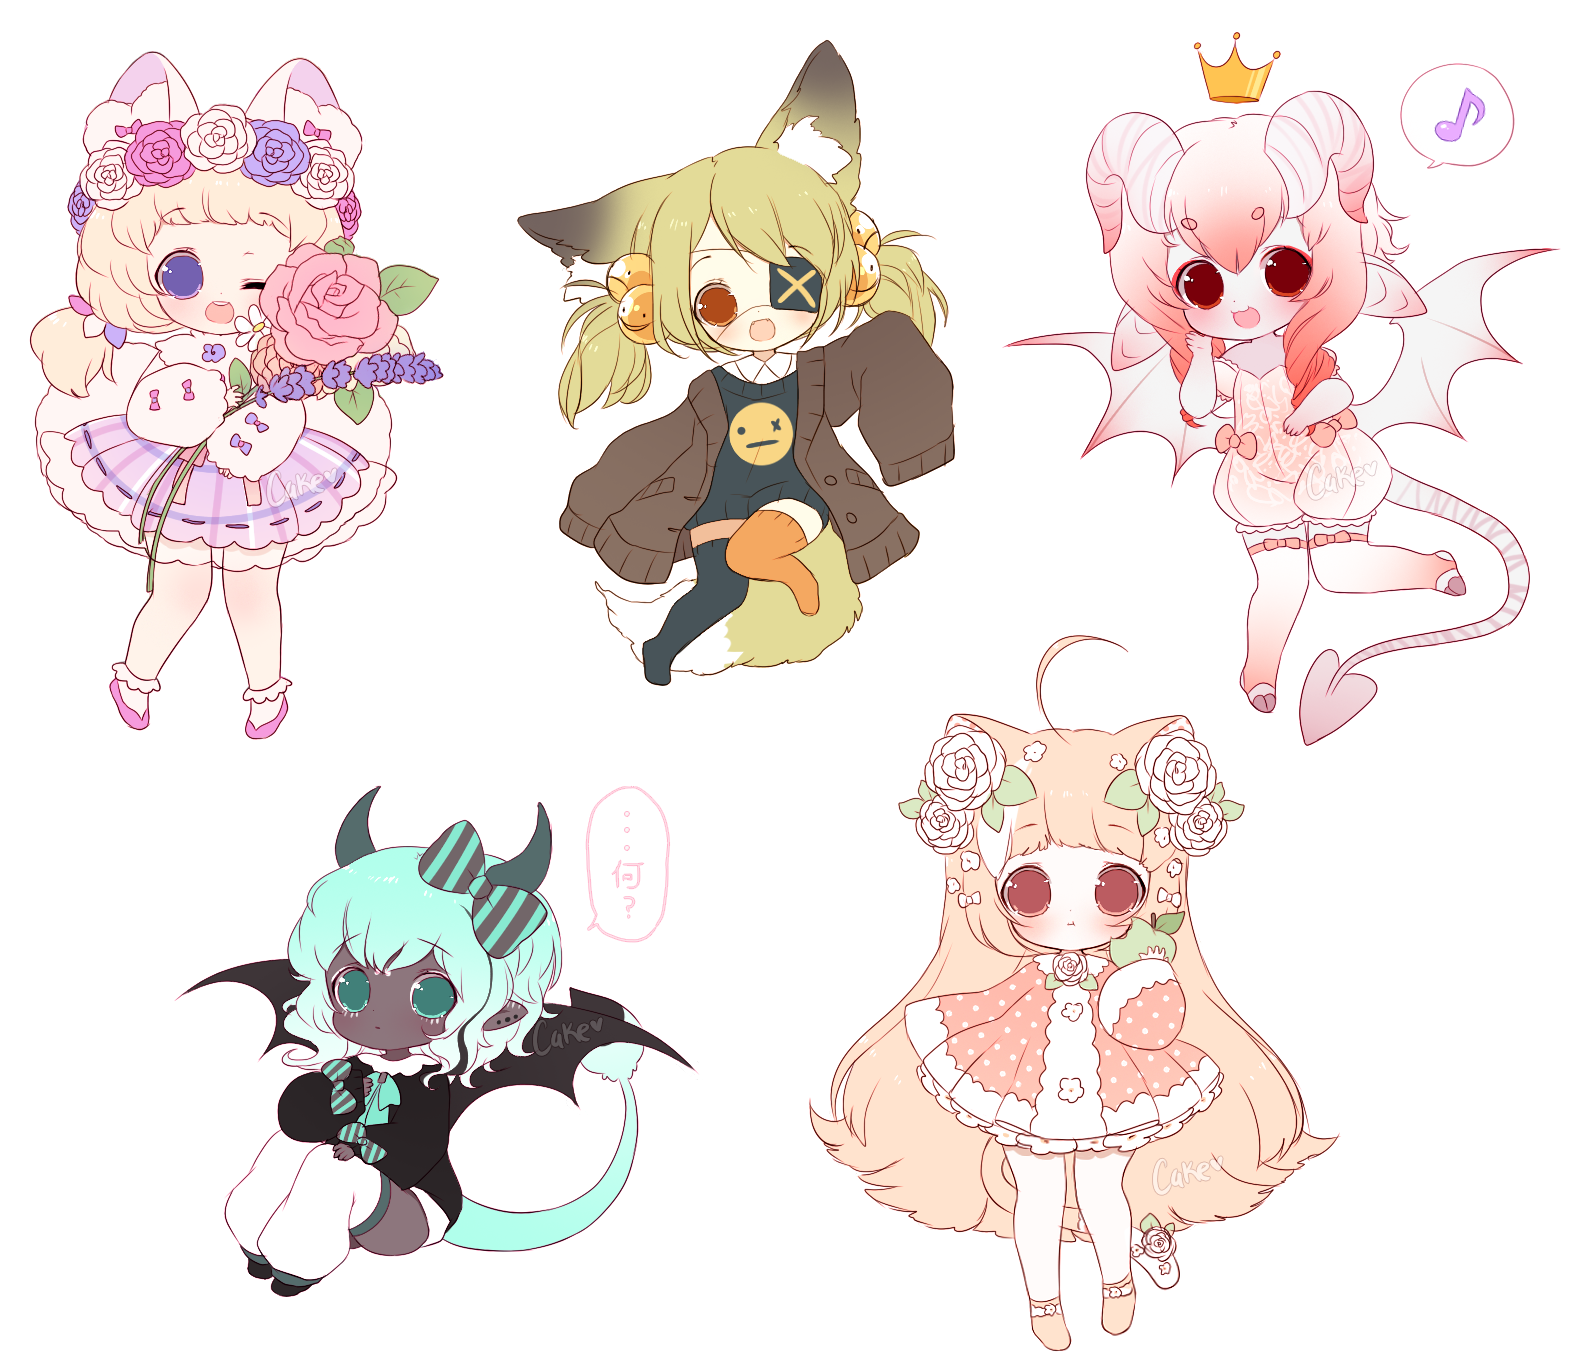 Chibi Sketch Batch 1 by CakeChan Chibi sketch, Cute